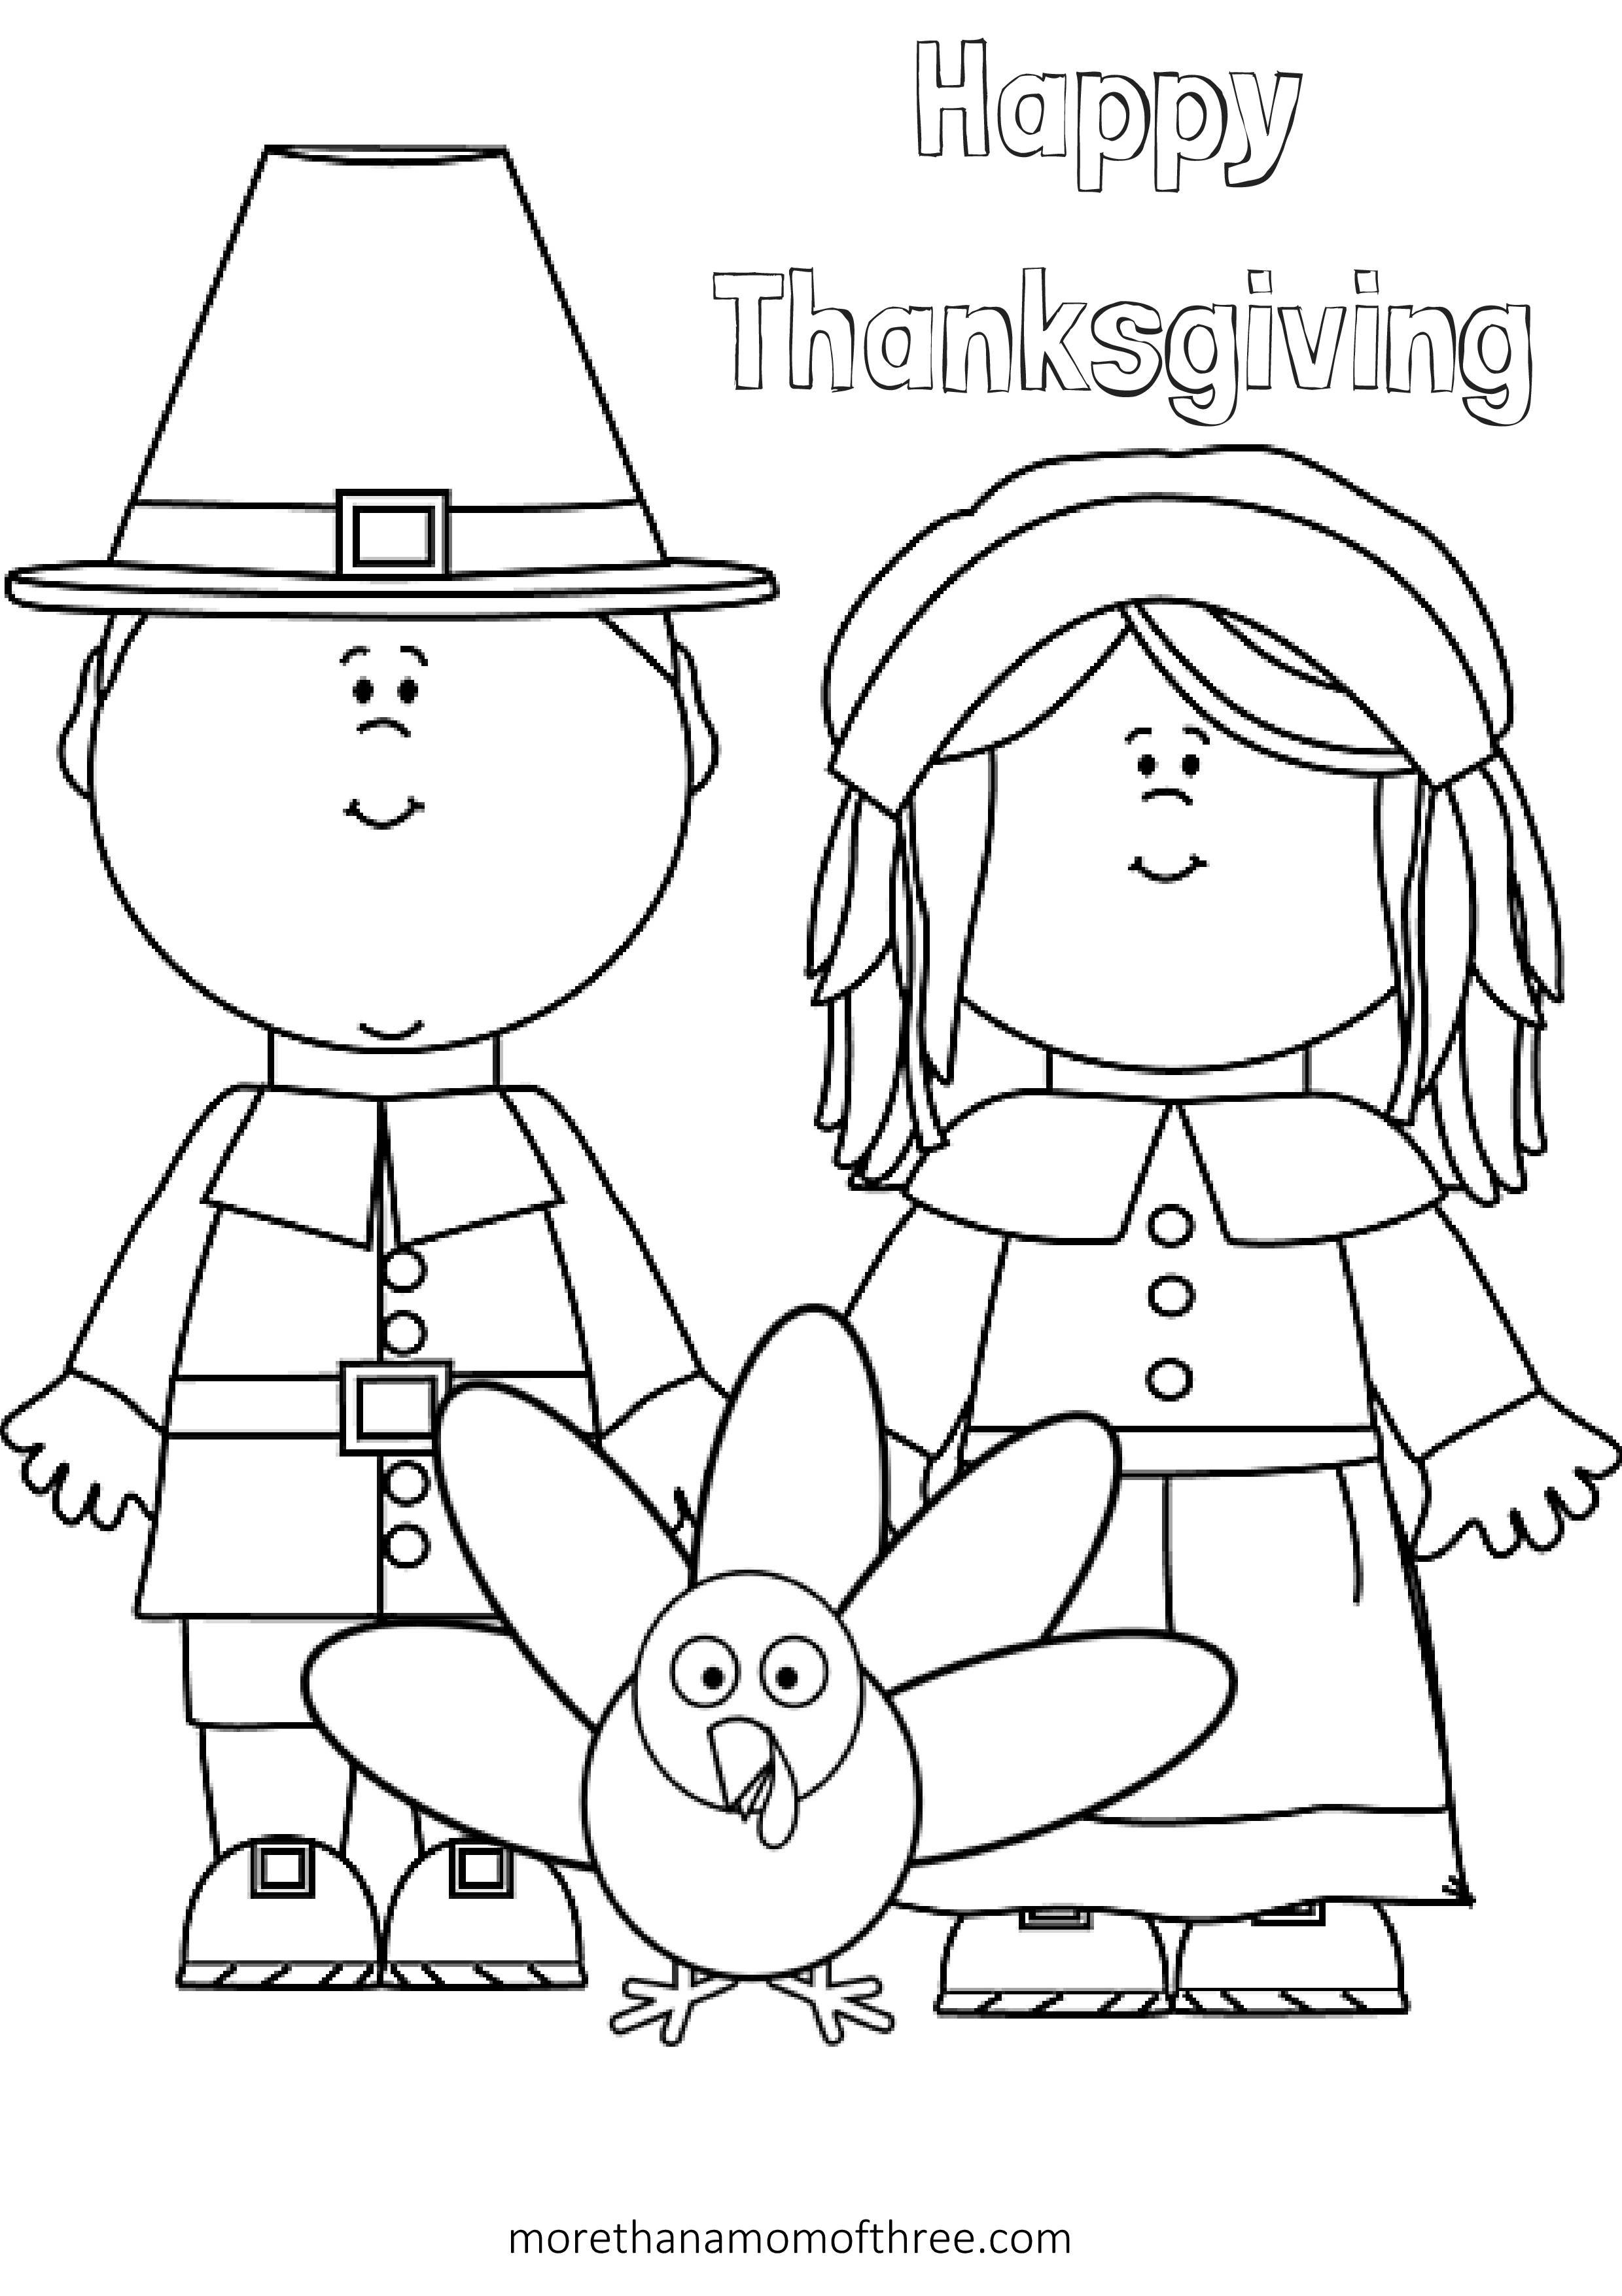 thanksgiving color page thanksgiving day coloring pages for childrens printable color page thanksgiving